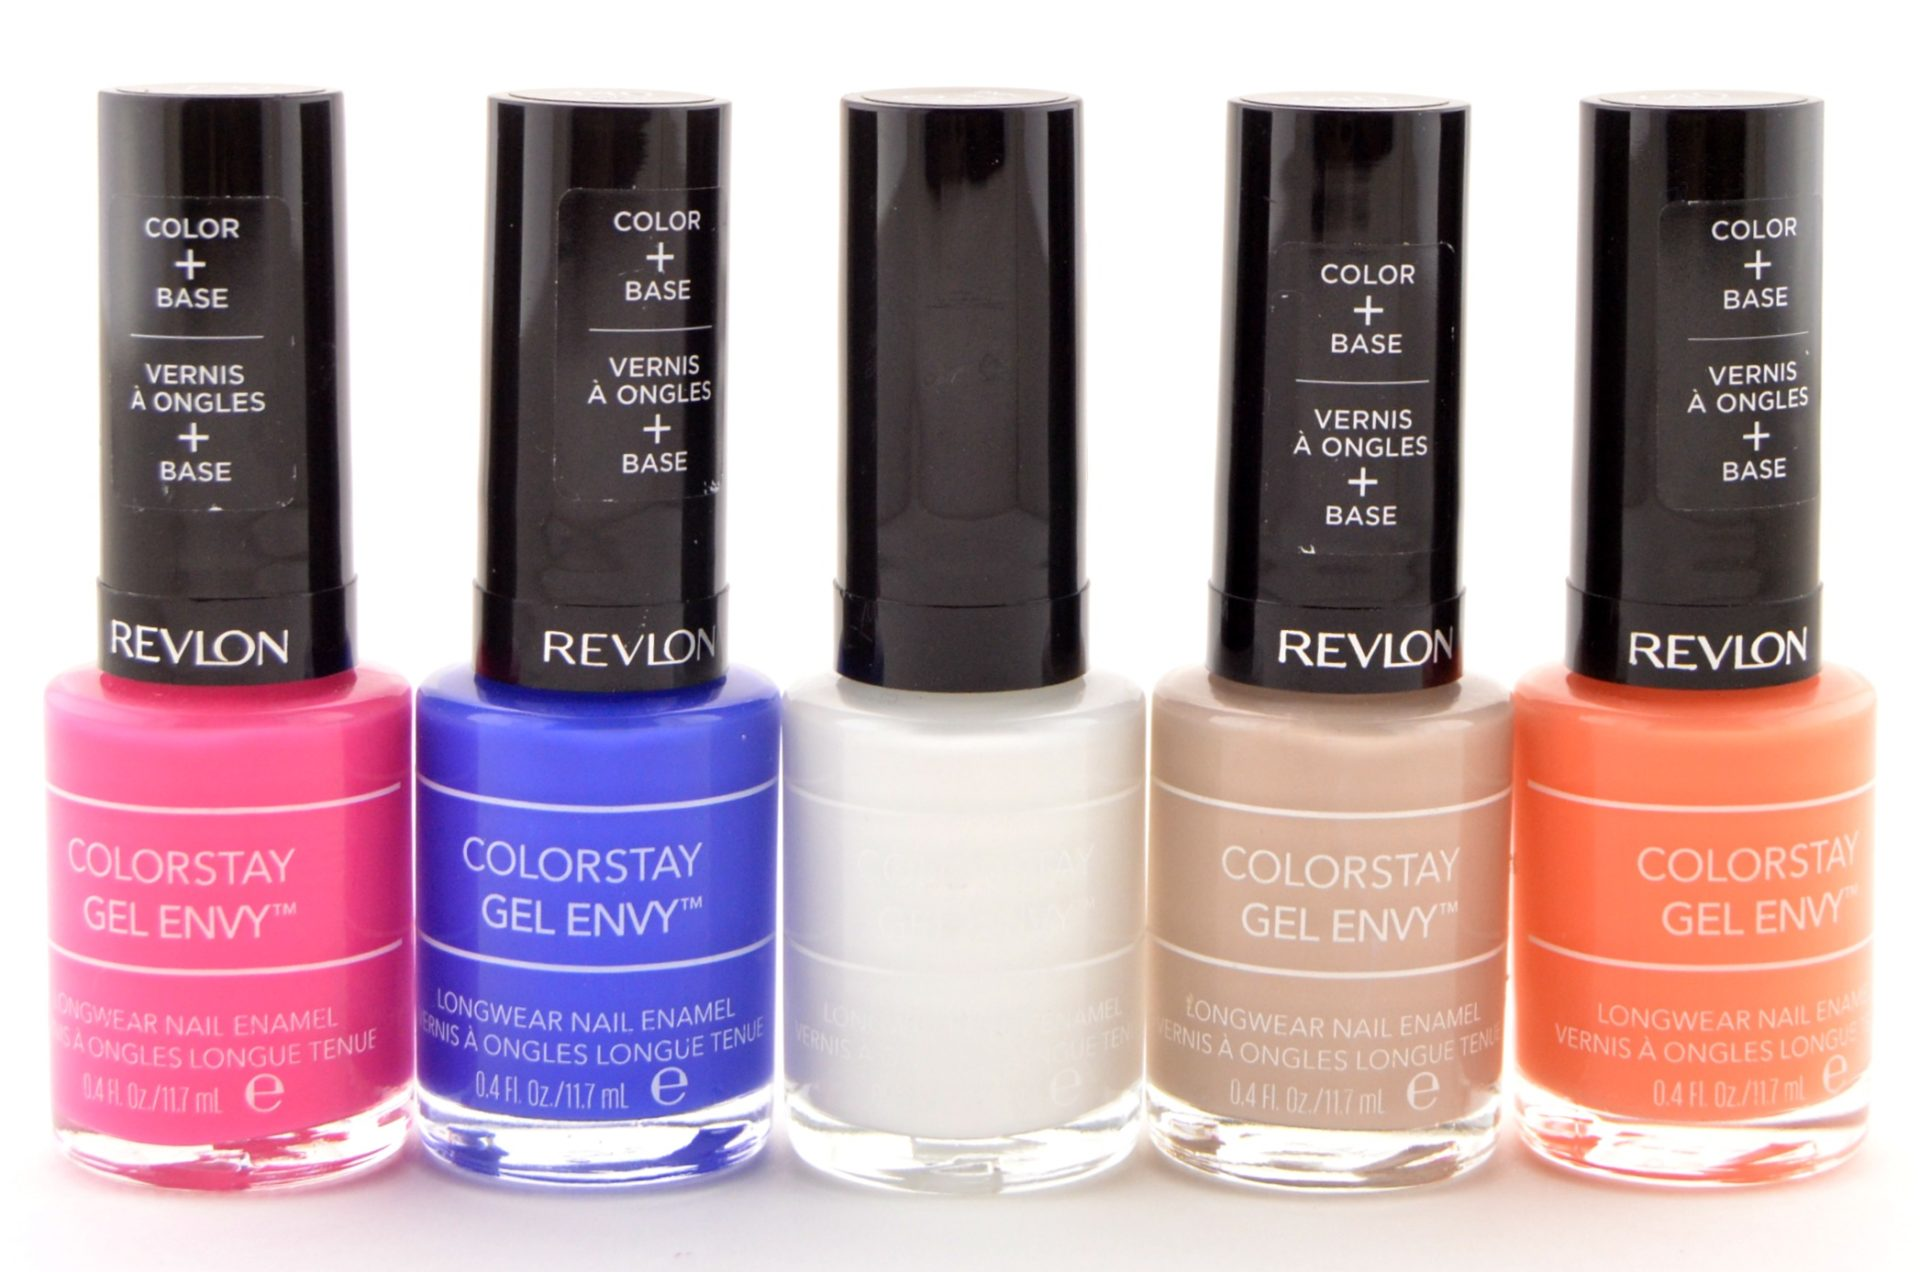 Top 10 name brand nail polish sparkly polish nails 1 revlon colorstay gel envy longwear nail enamel nvjuhfo Image collections